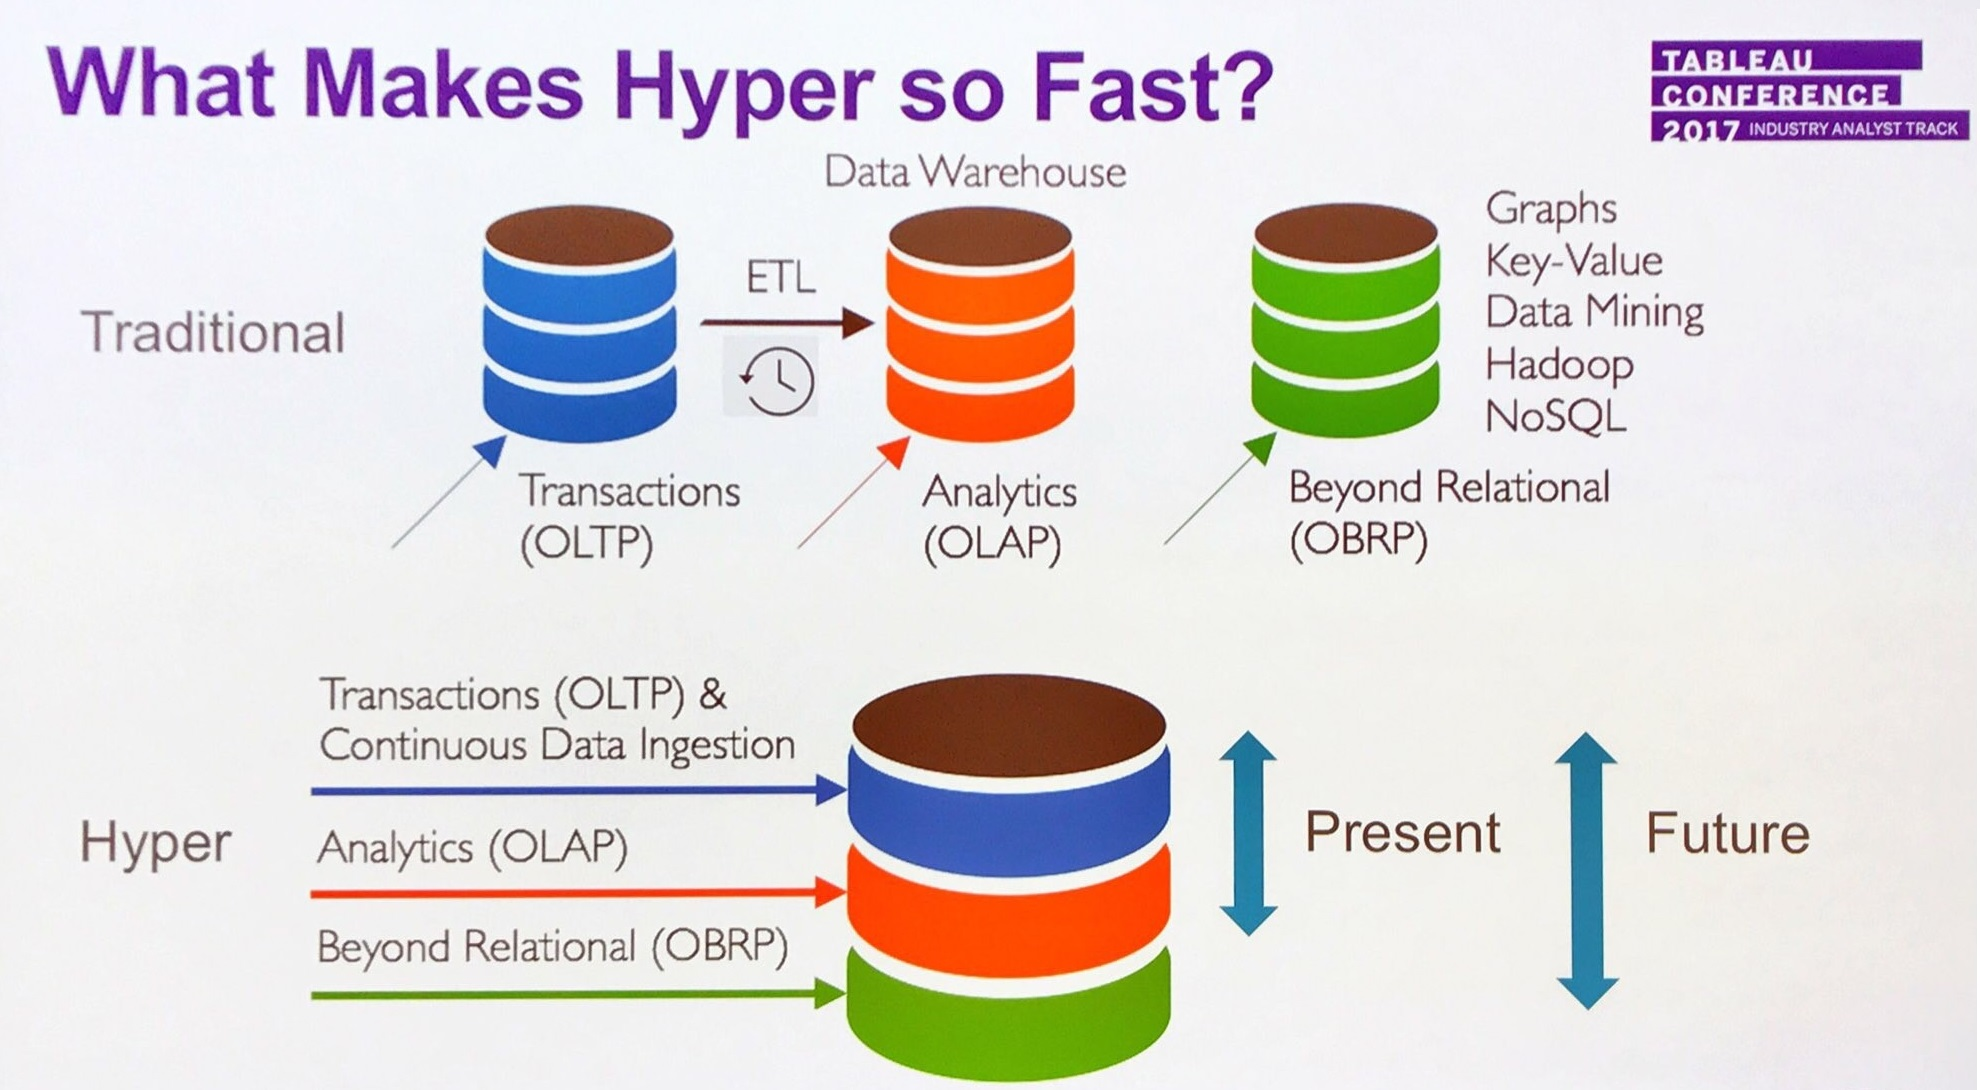 hight resolution of for now tableau s new hyper engine meets scale and performance demands tied to handling structured data extracts in future it will address nosql and graph